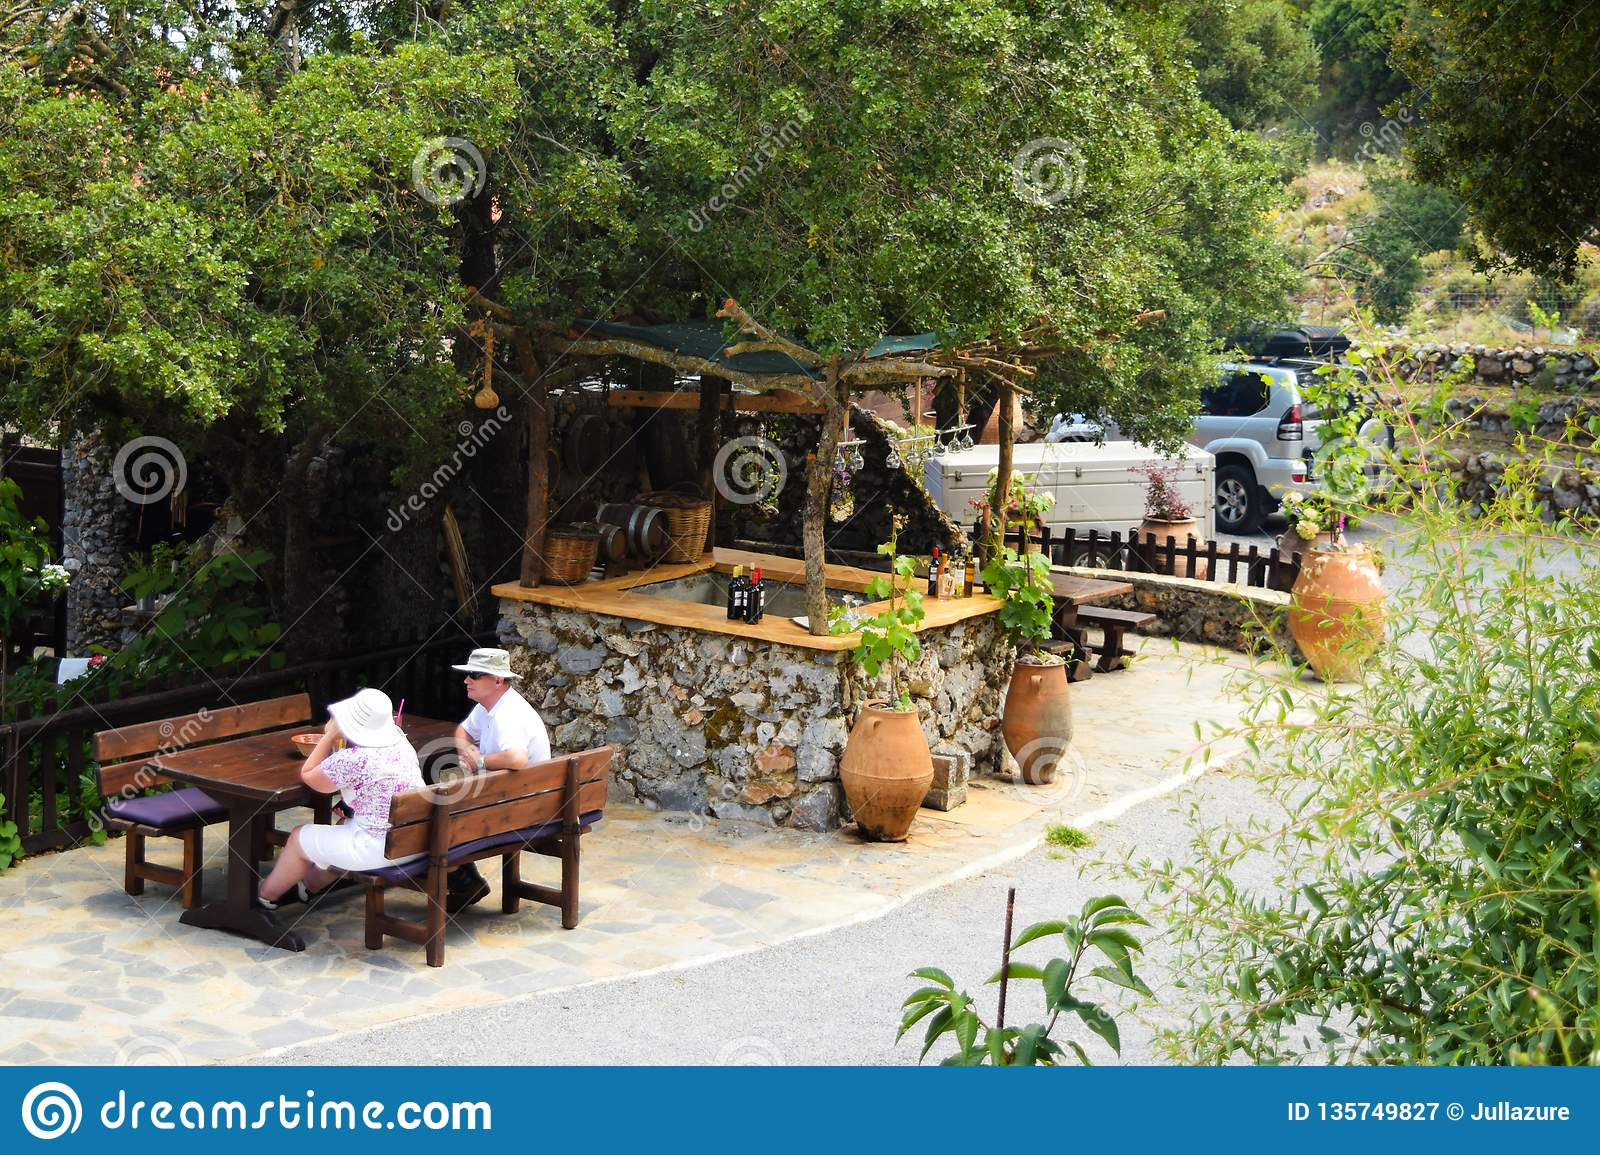 Crete, Greece - June 22, 2015: Wooden barrel of wine and table in outdoor cafe. Street cafes in Crete, Greece